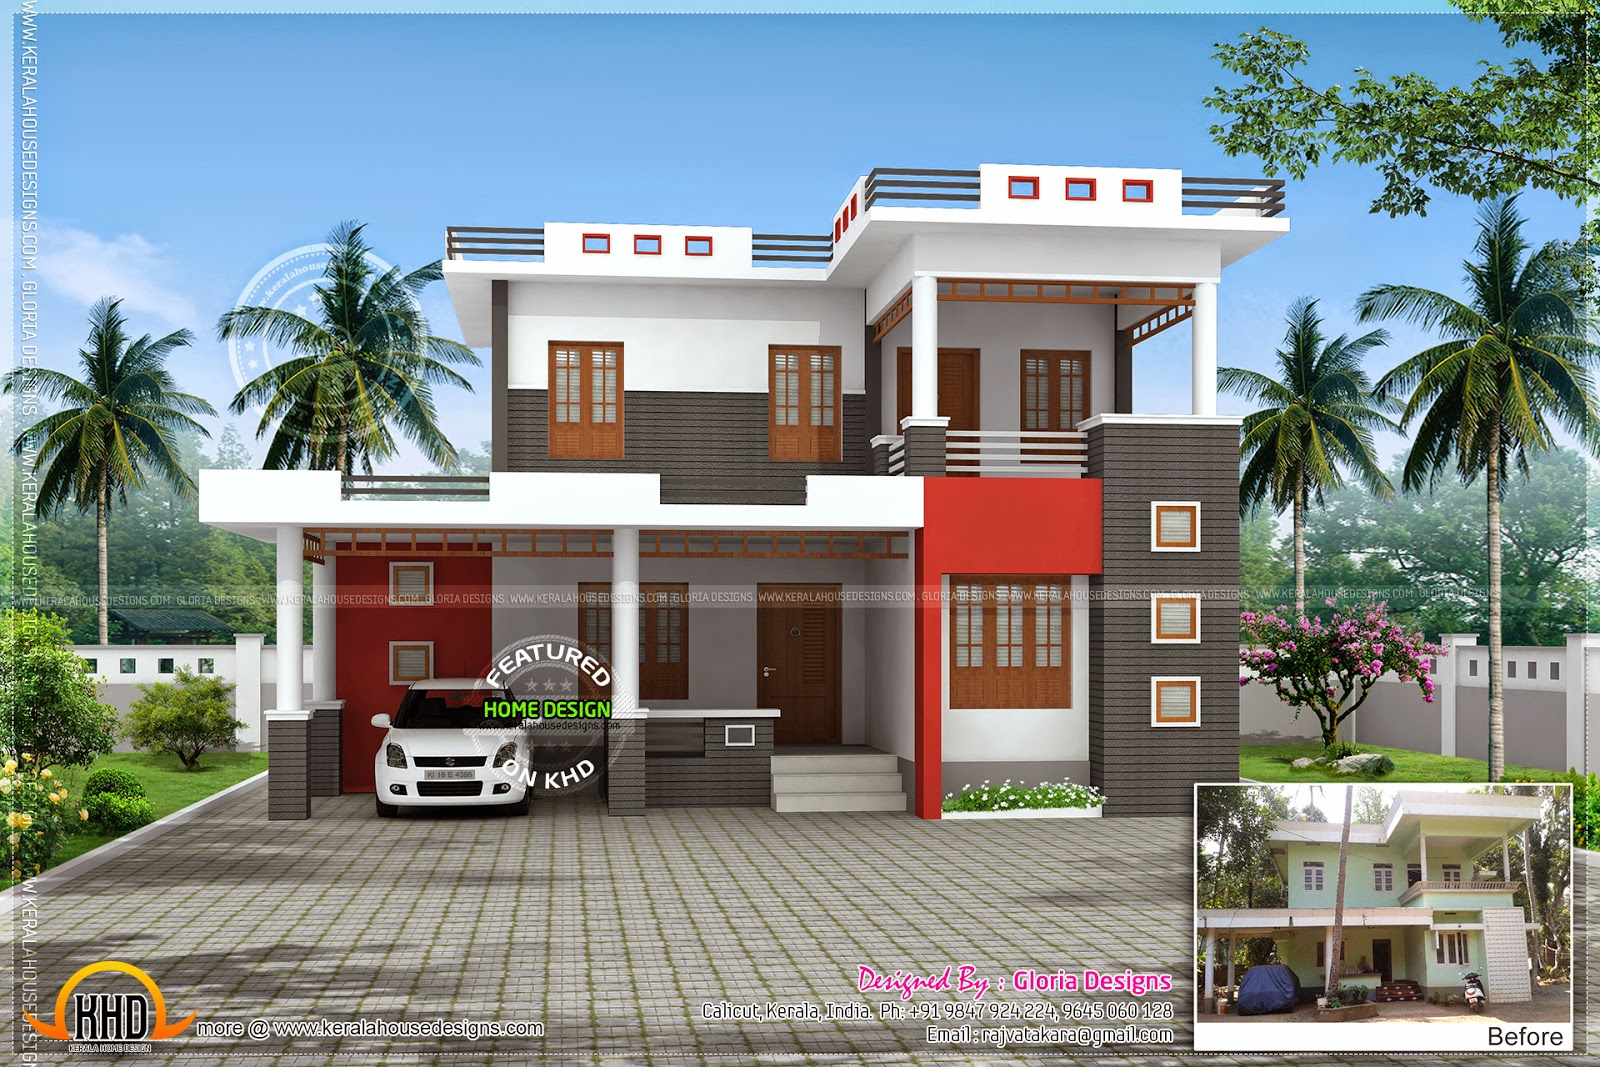 Renovation 3d model for an old house kerala home design Indian model house plan design